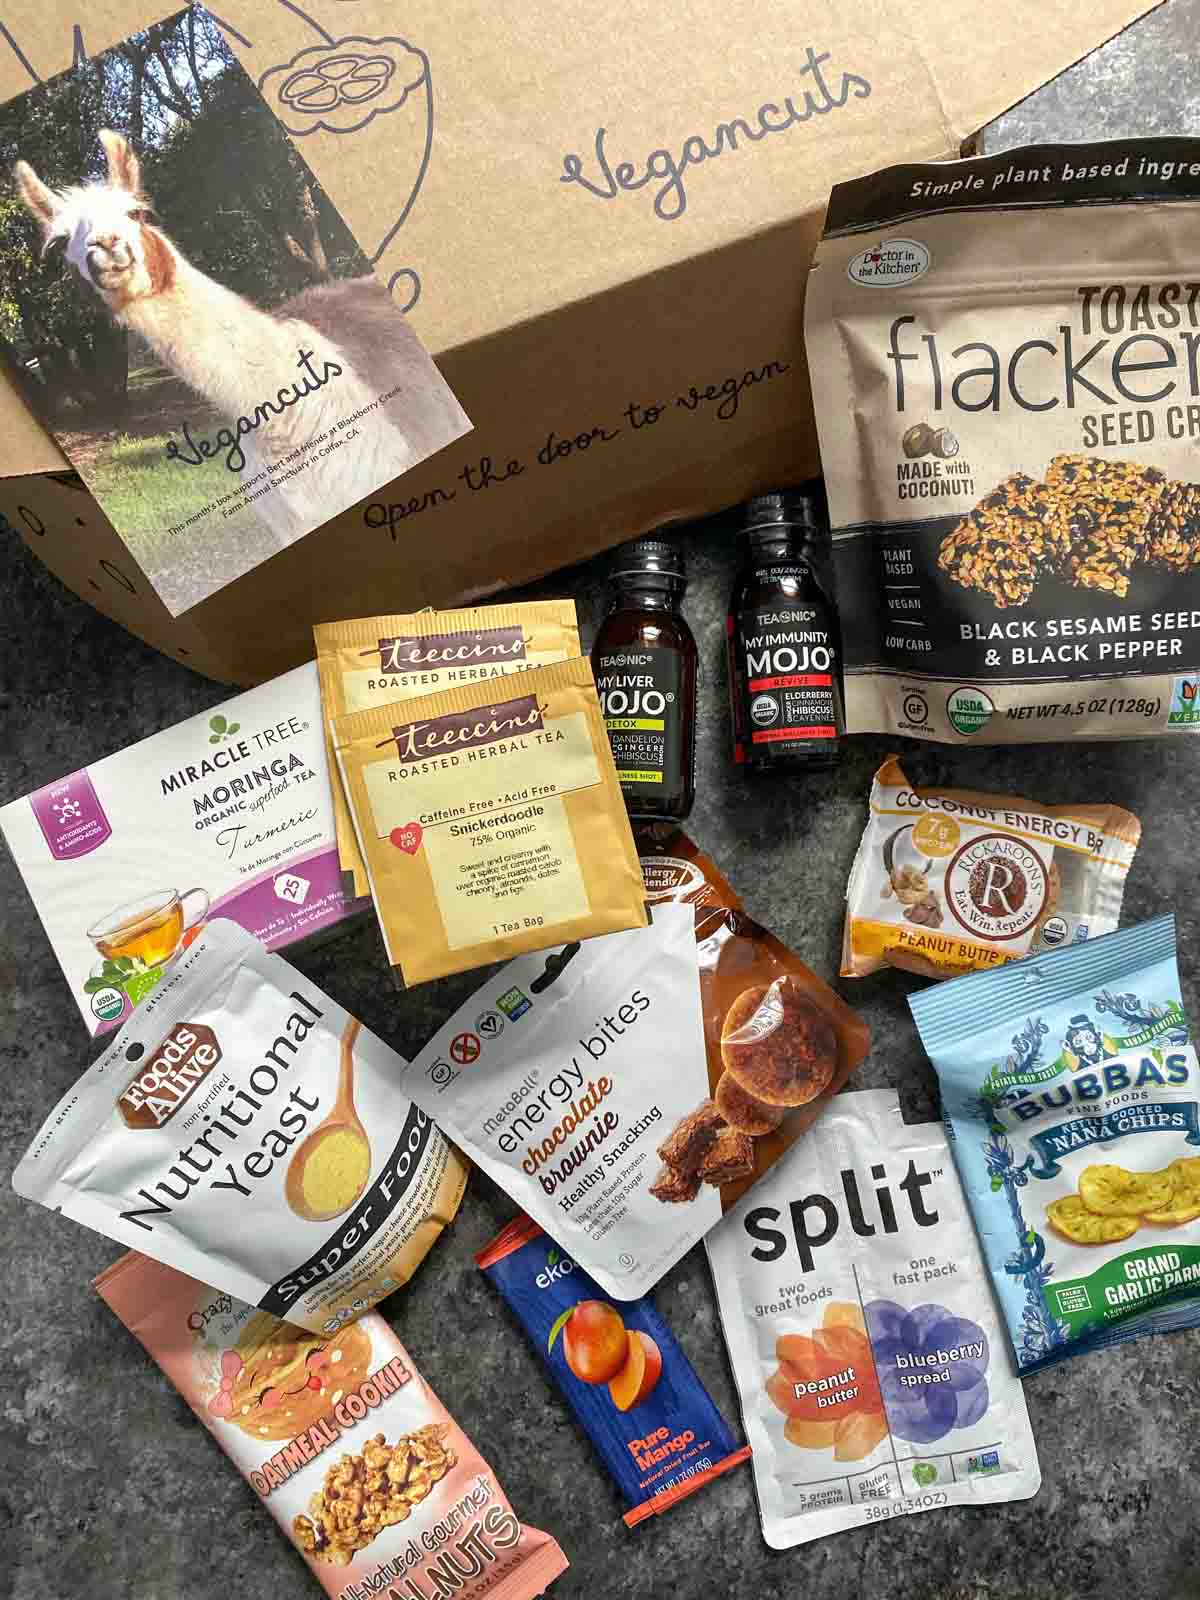 Vegancuts snack box preview and animal sanctuary postcard